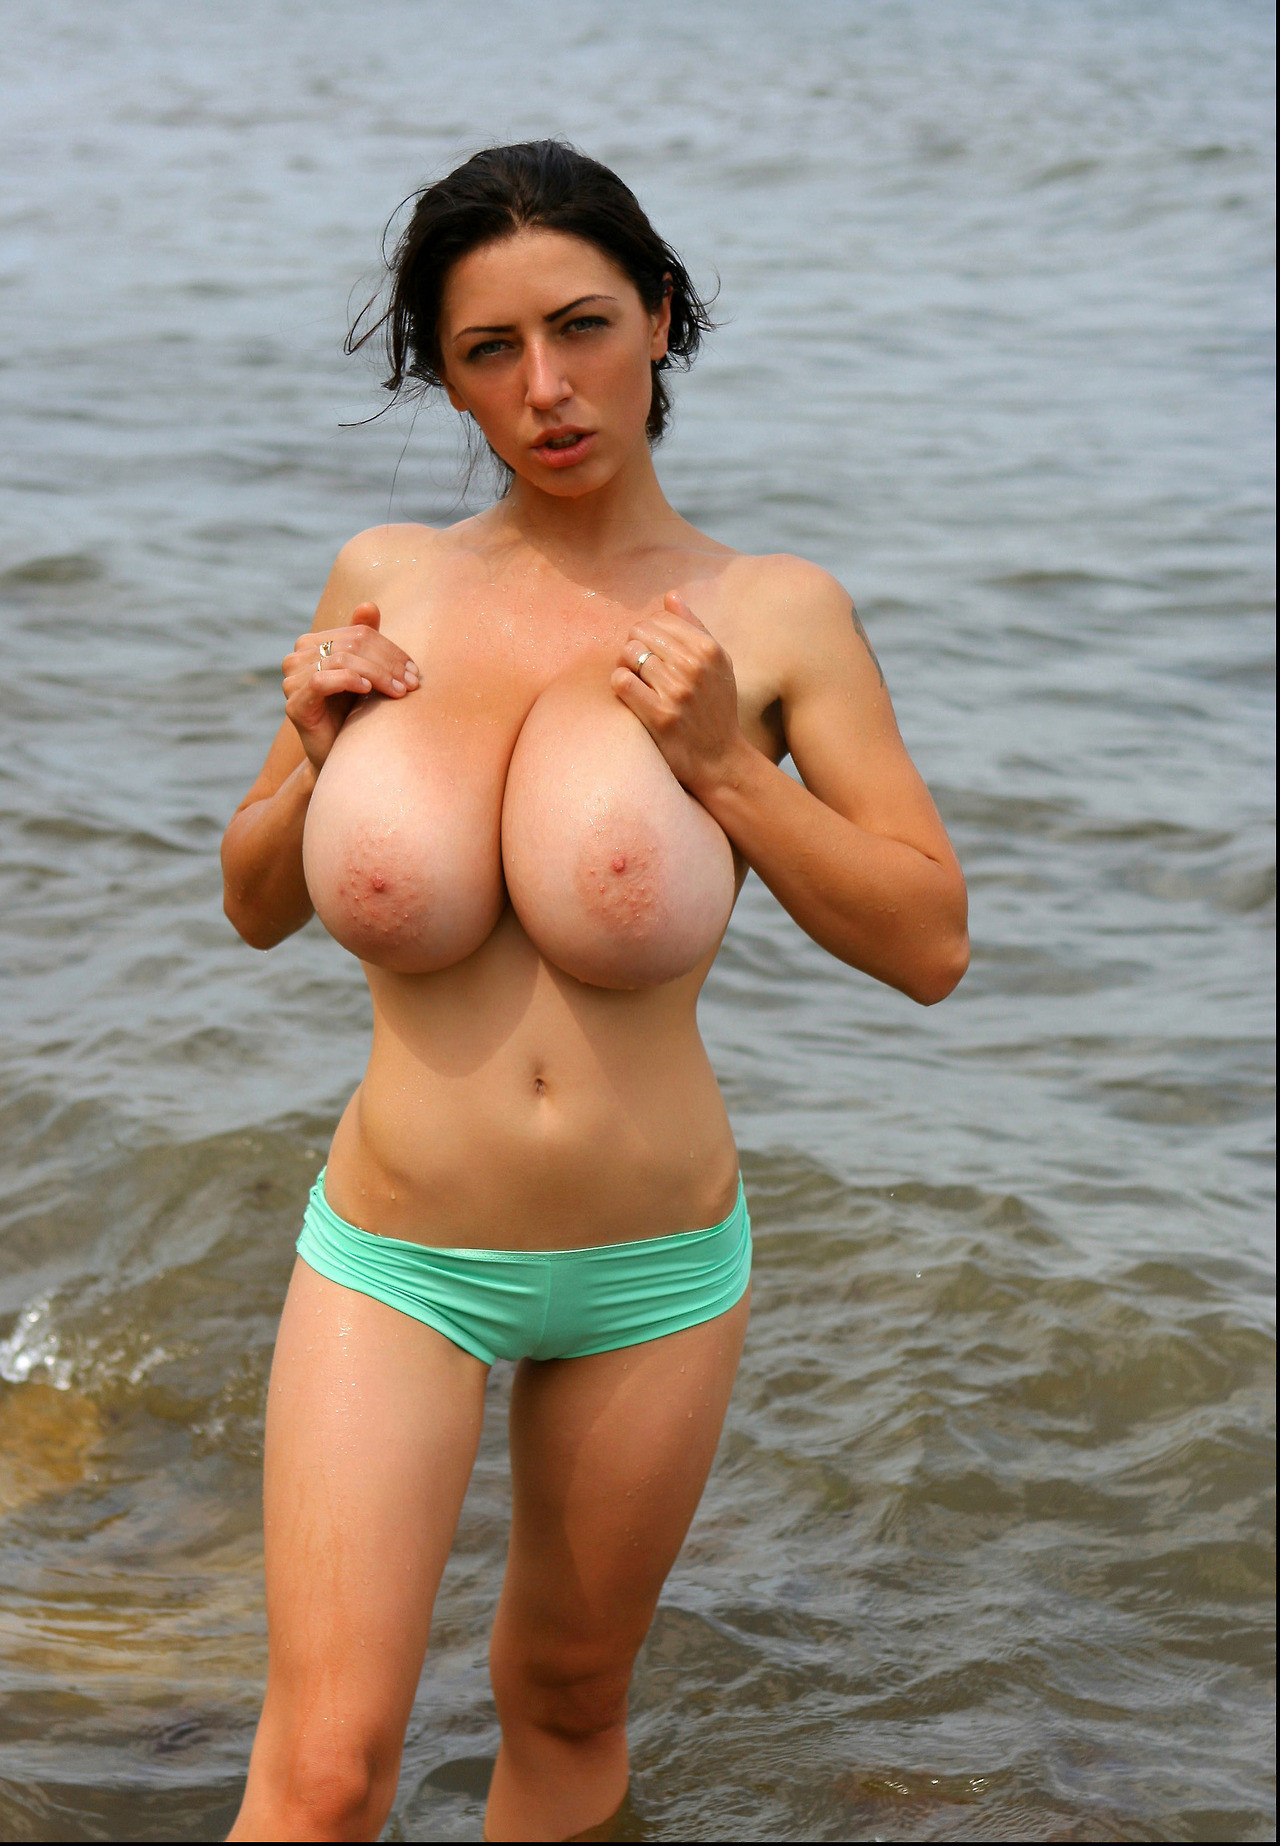 huge tits at the beach. porn photo - eporner